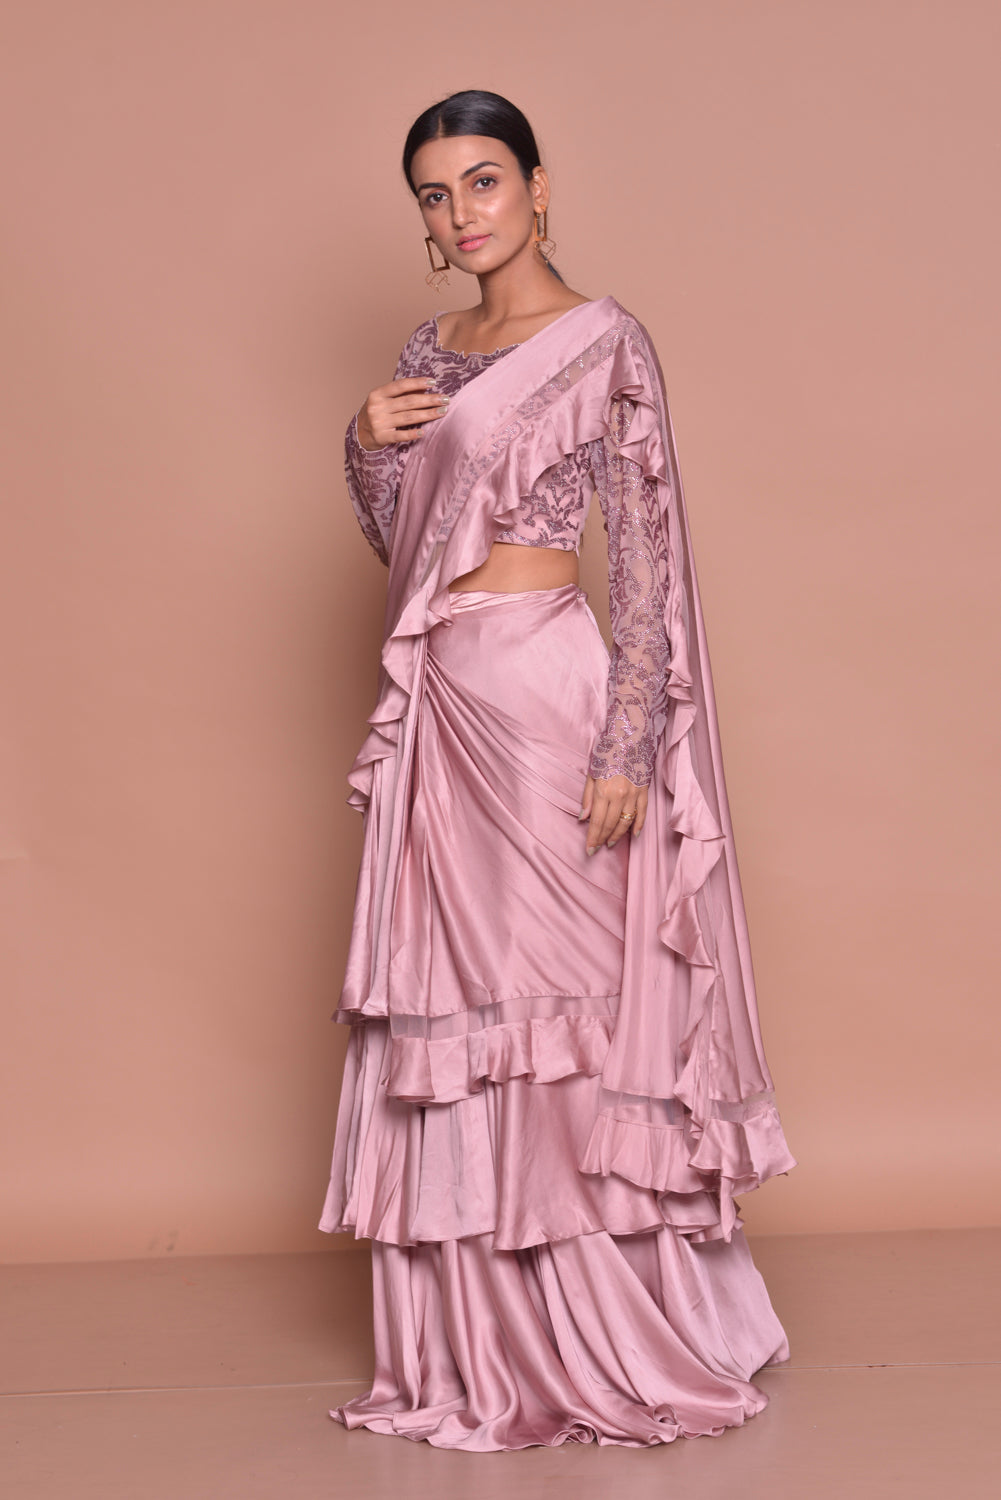 Buy stylish onion pink ruffled saree online in USA with full sleeves blouse. Look fashionable on special occasions in contemporary sarees, designer sarees with blouse, embroidered saris from Pure Elegance Indian luxury clothing store in USA.-side